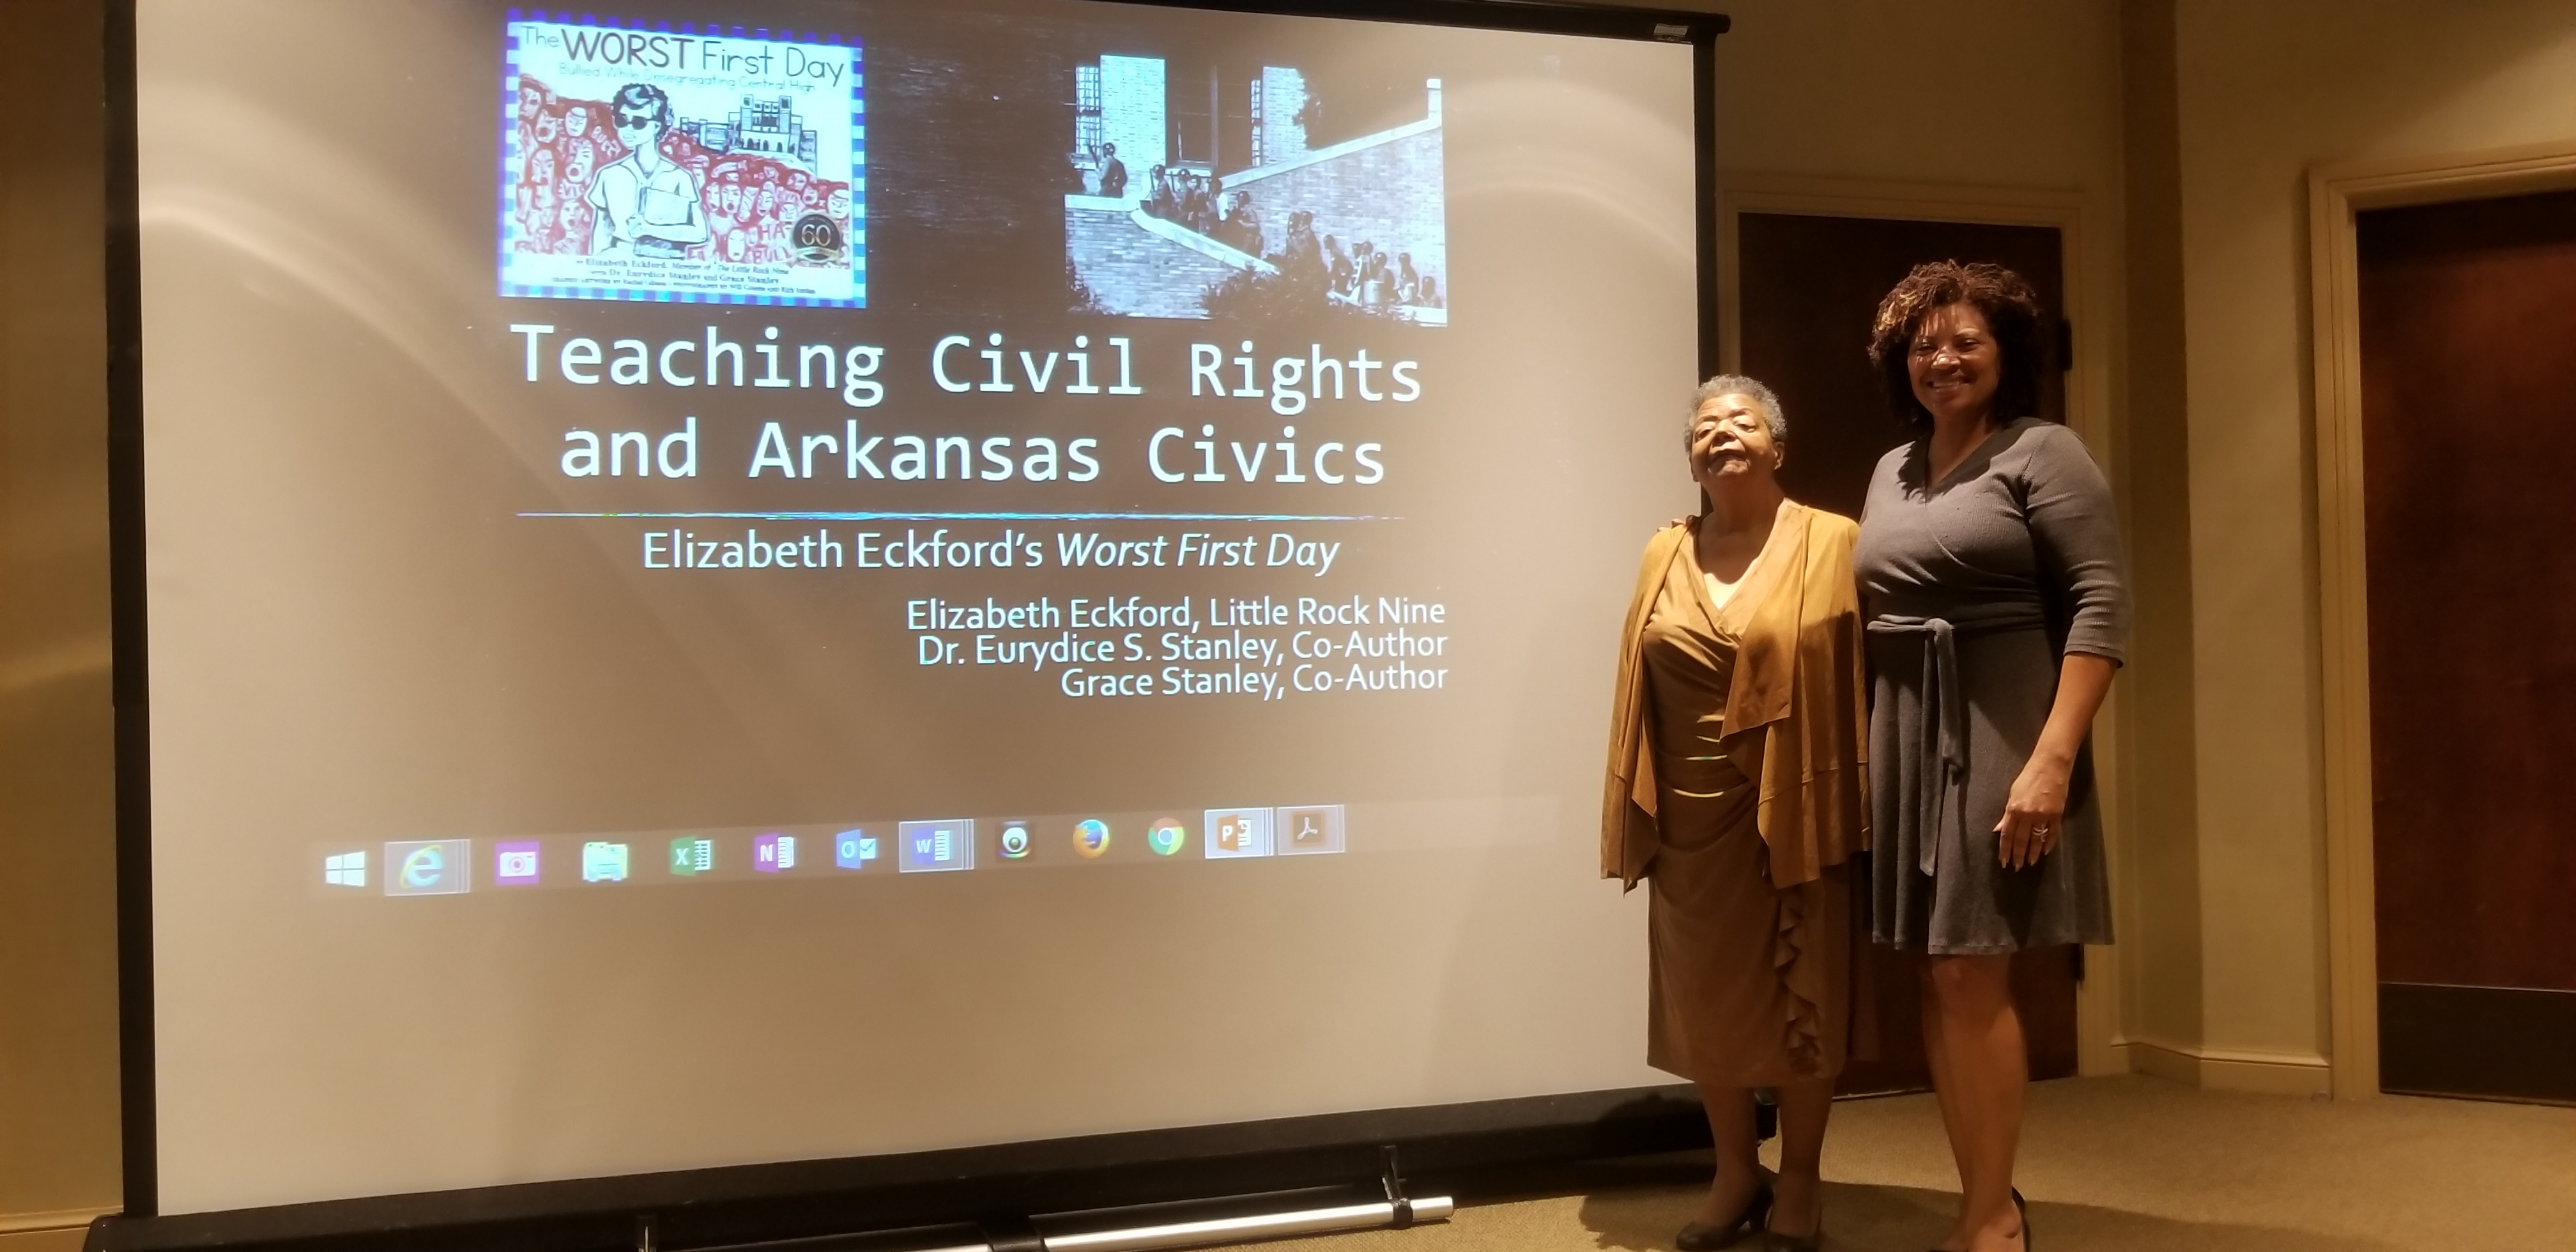 Elizabeth Eckford and Eurydice Stanley standing in front of presentation screen